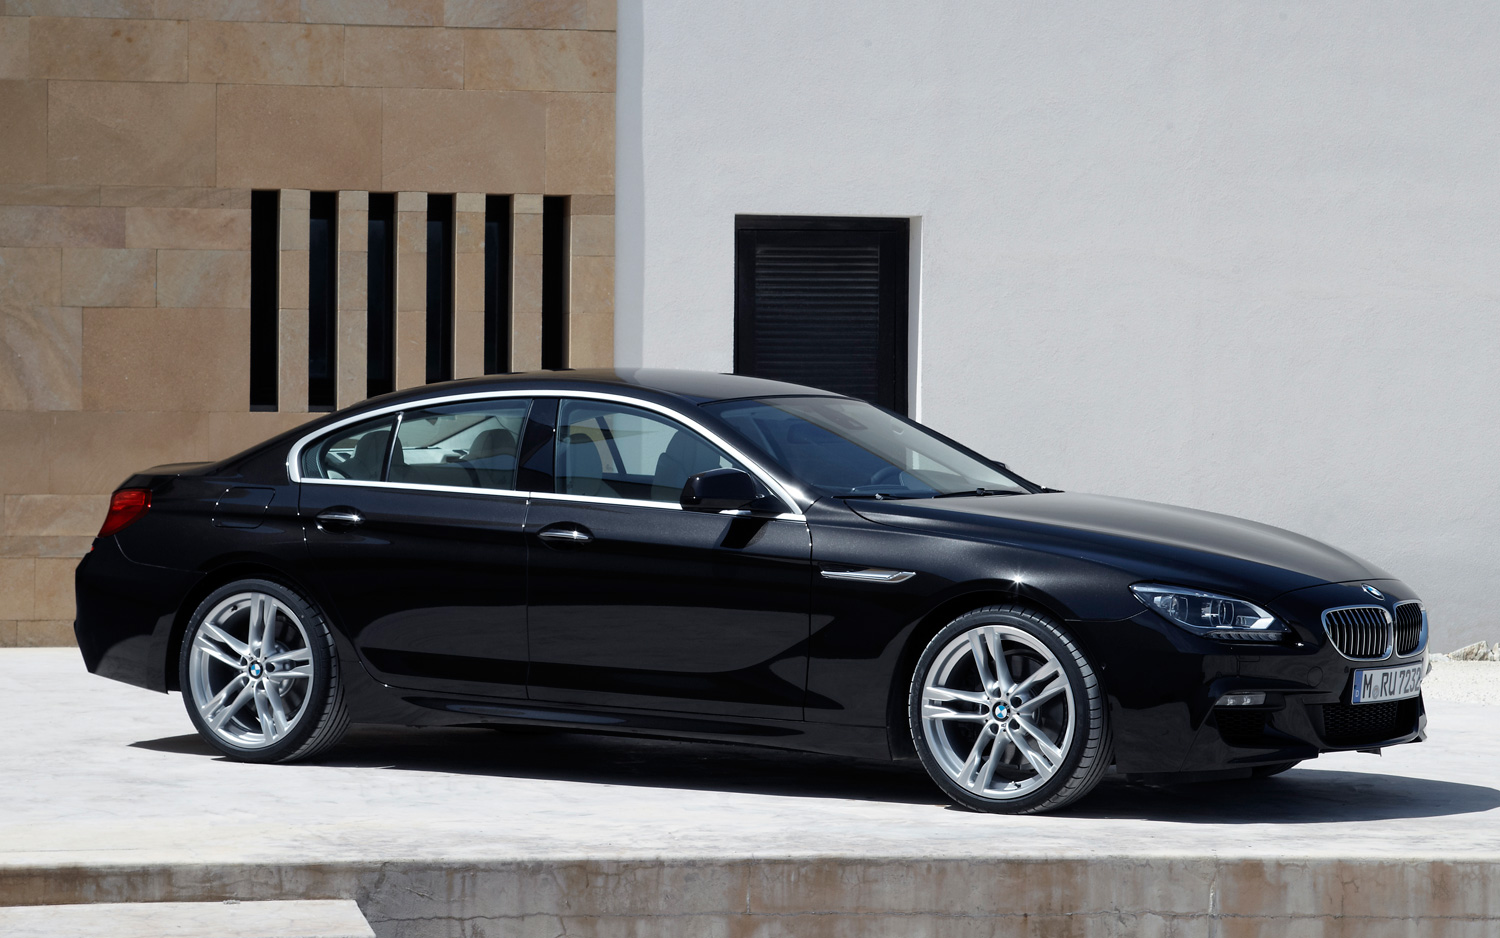 Bmw Gran Coupe 6 Confirmed Bmw M6 Gran Coupe Launching In 2013 Motortrend